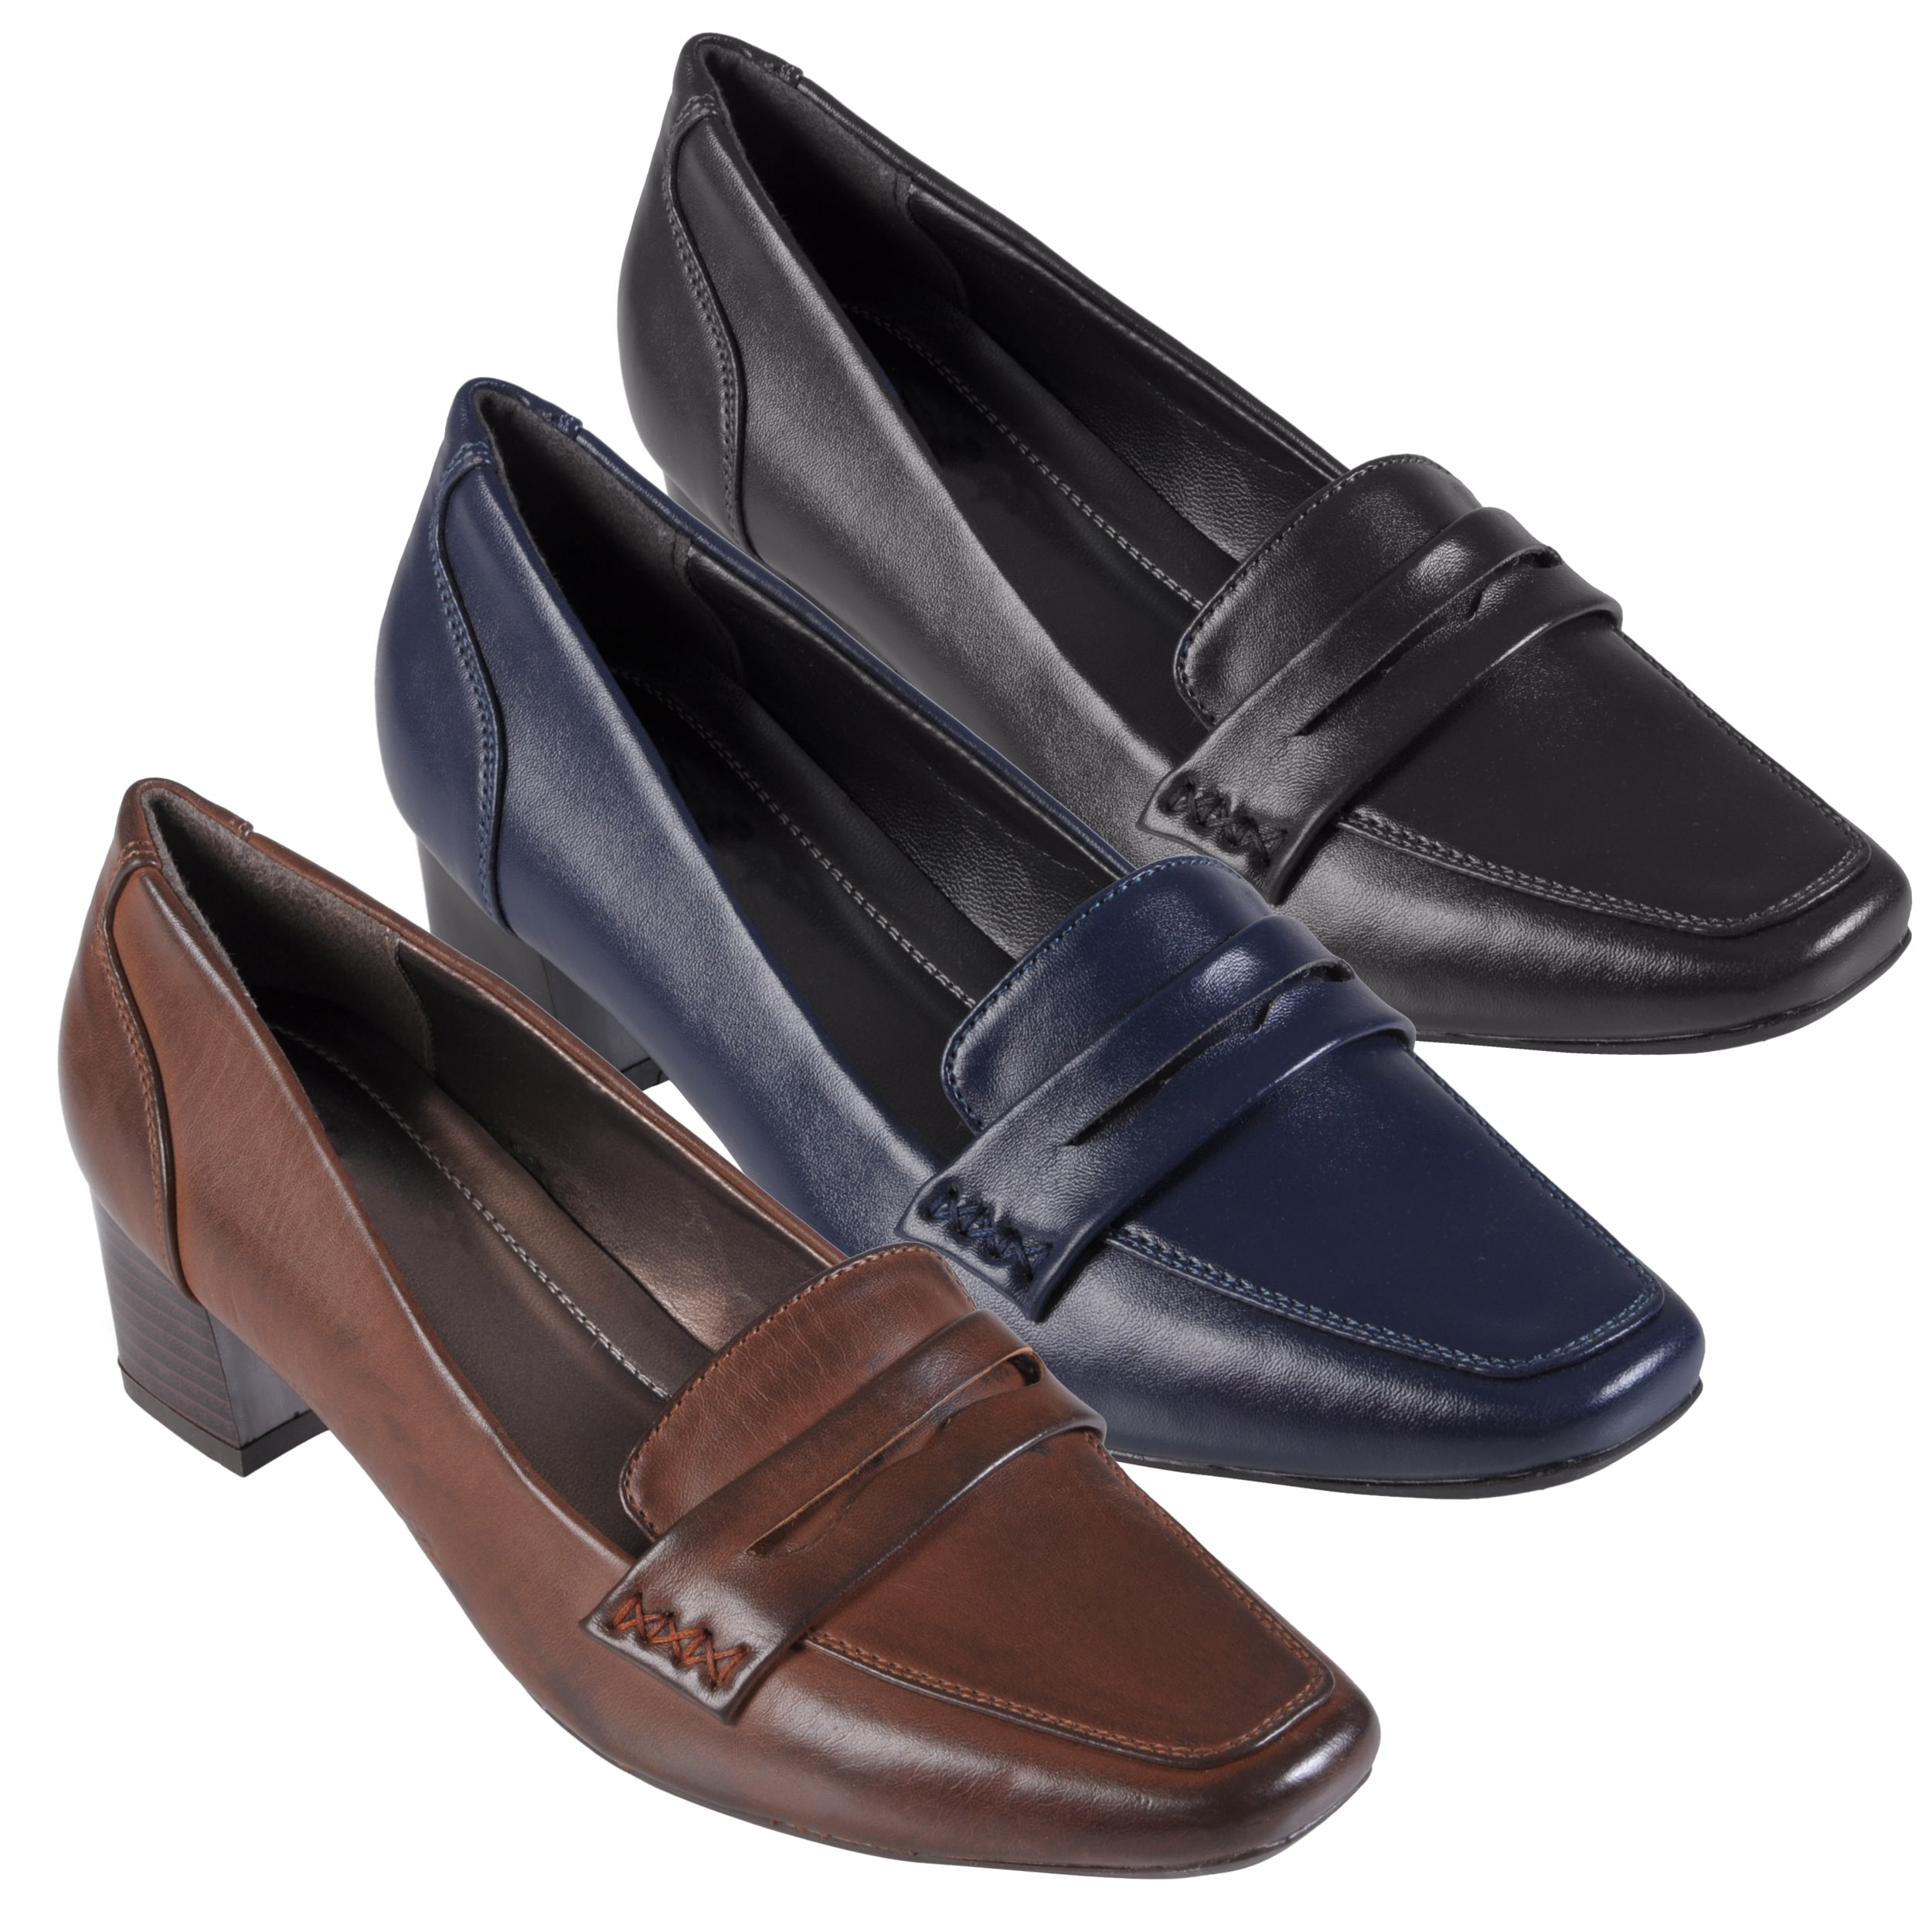 Journee Collection Women's 'Boss-08' Faux Leather Square Toe Loafers